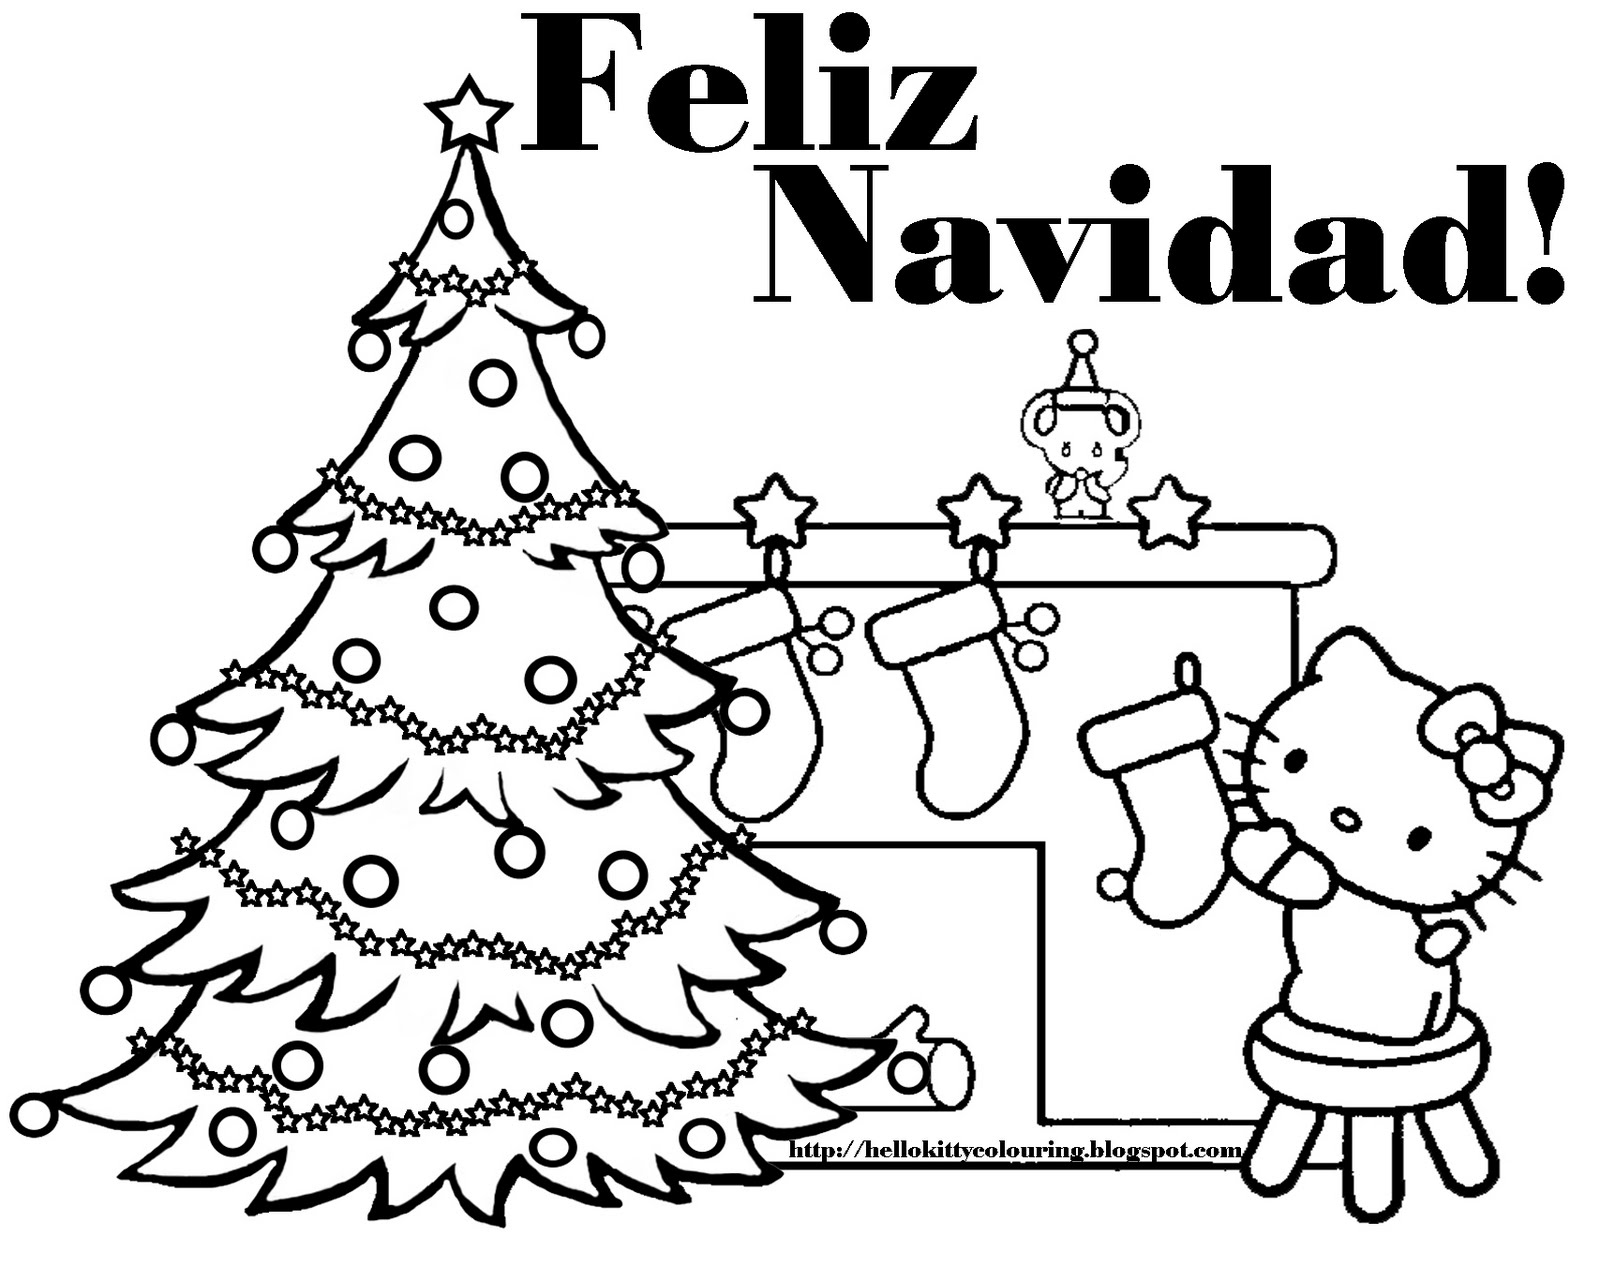 Uncategorized Spanish Coloring Pages Free bible coloring pages in spanish laura williams spanish